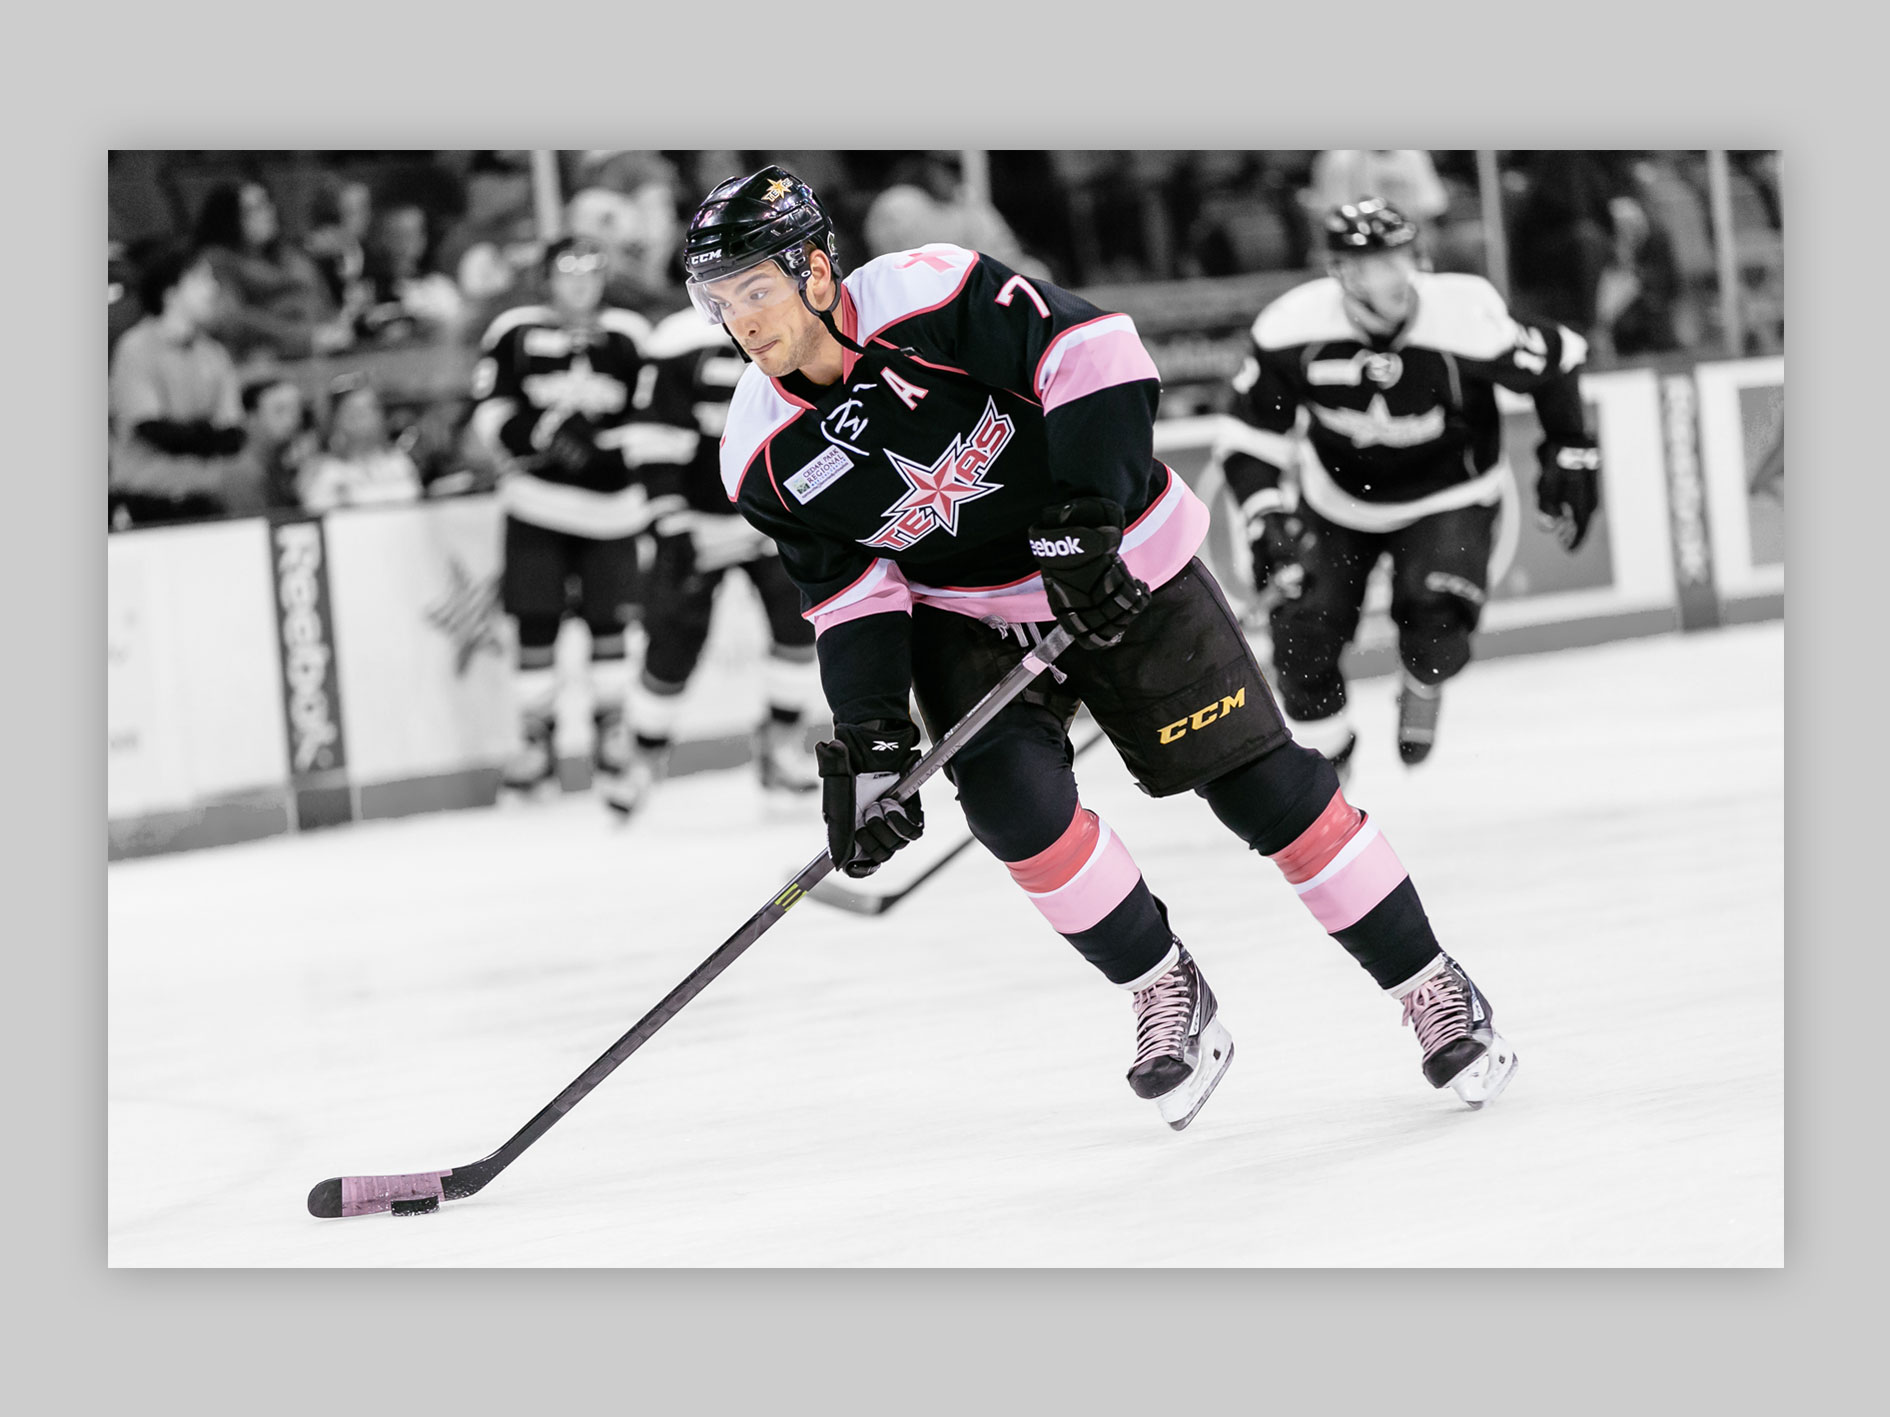 Breast Cancer Awareness specialty jersey, which increased auction proceeds by 22% over the previous year.